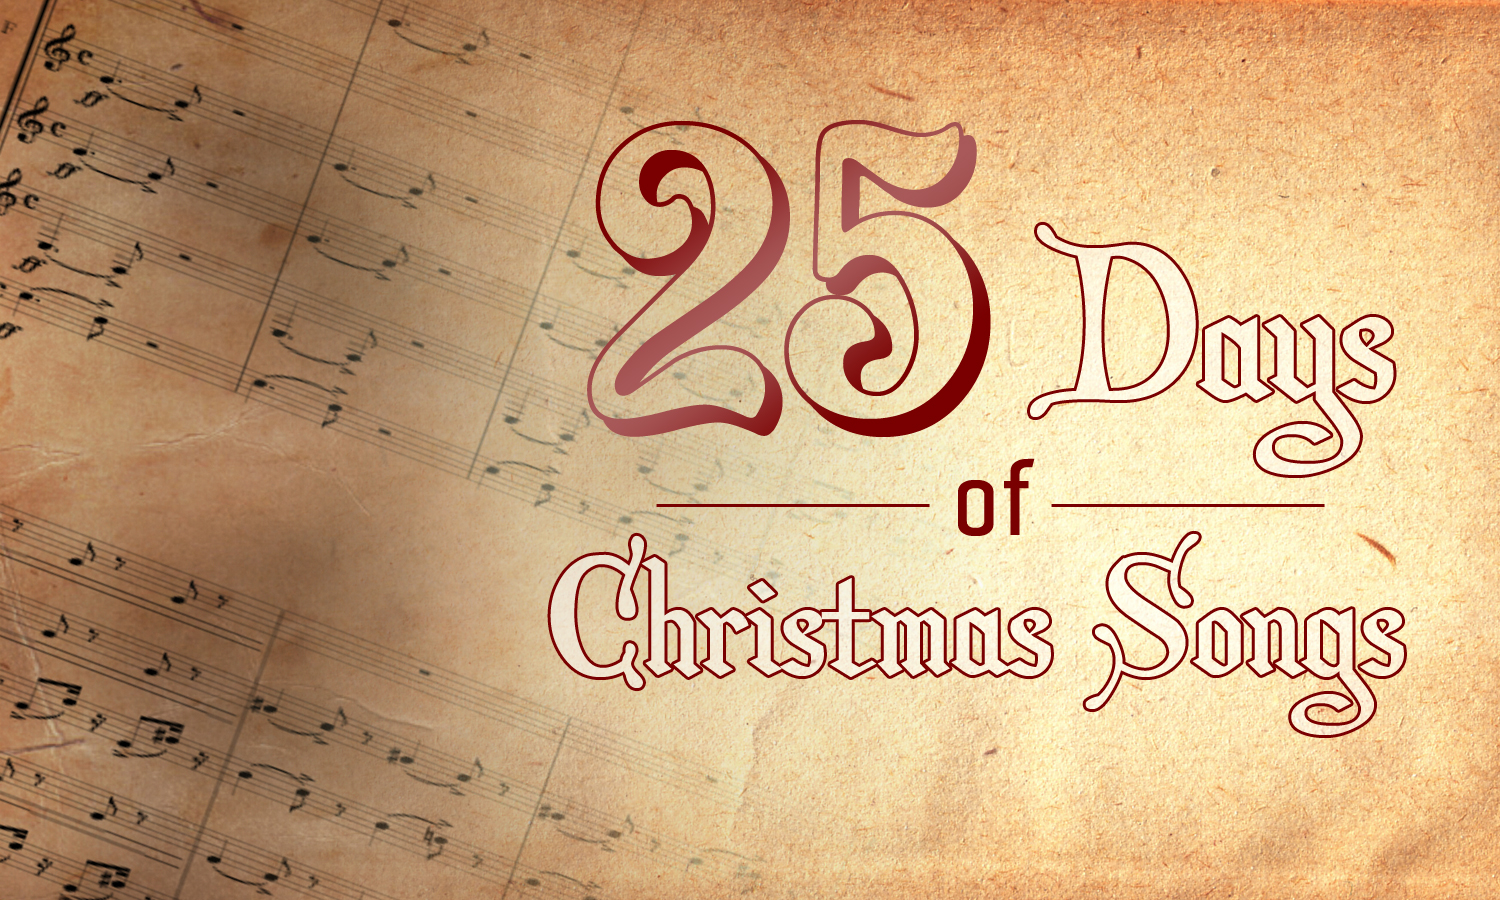 25 Days of Christmas songs – Day 17